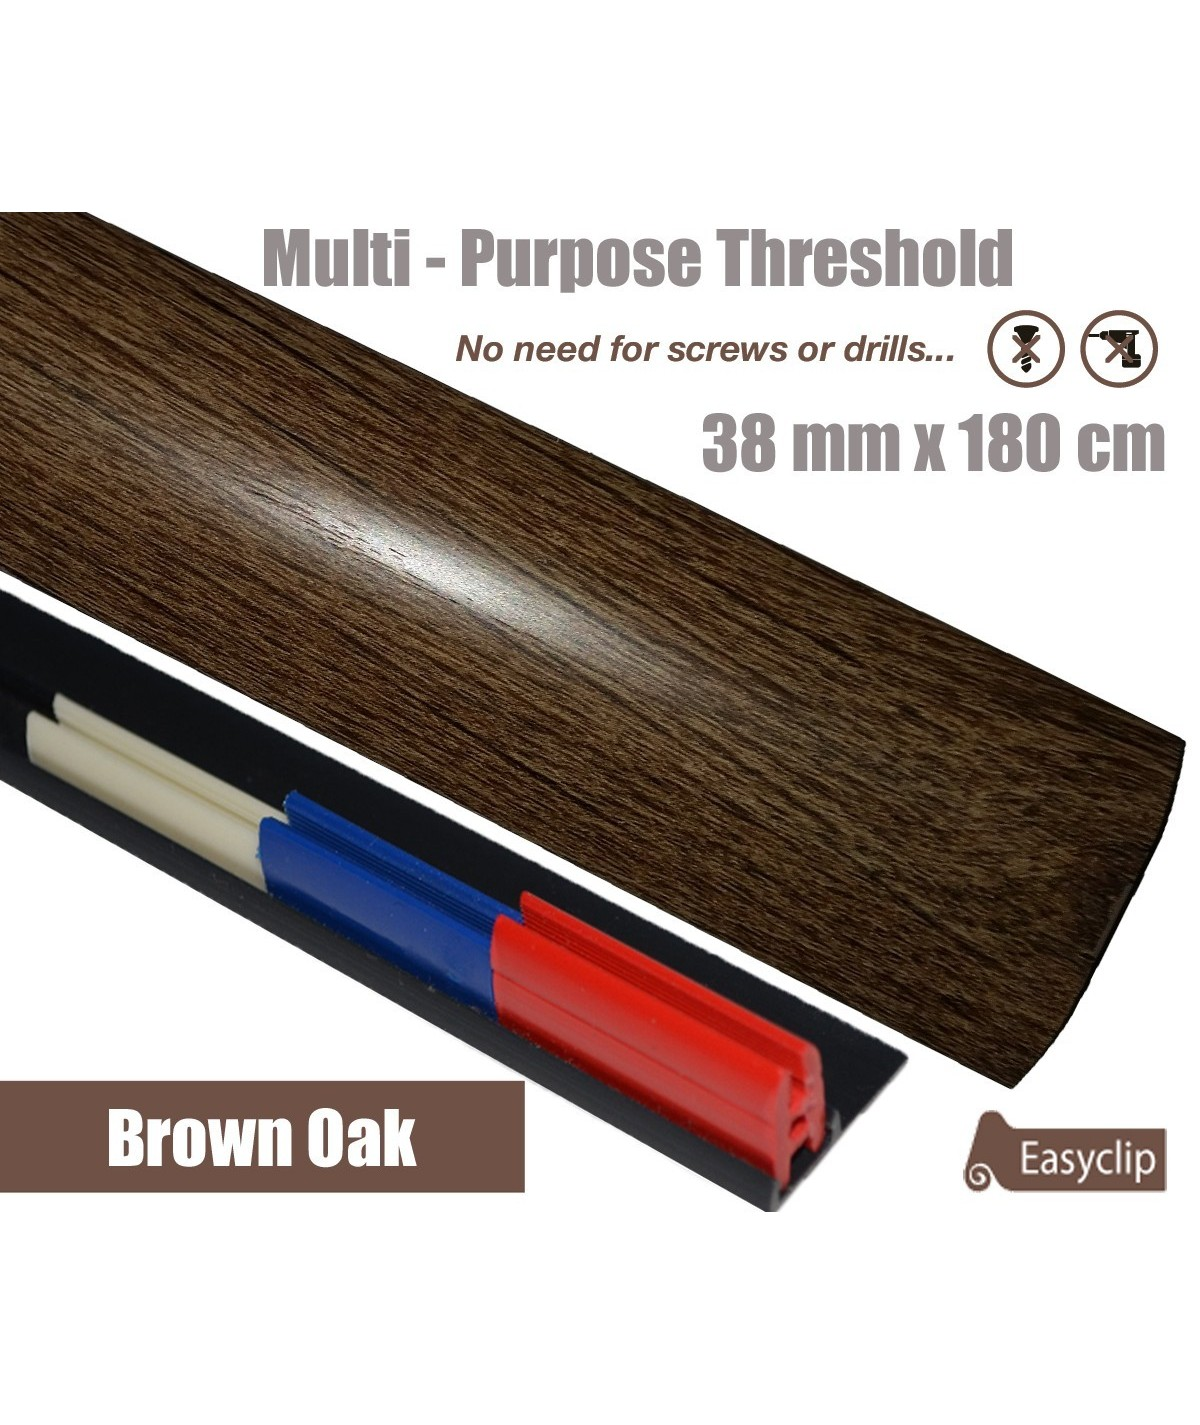 Brown Oak Threshold Strip 38mm x 180cm laminate multi Purpose Adhesive Clip System